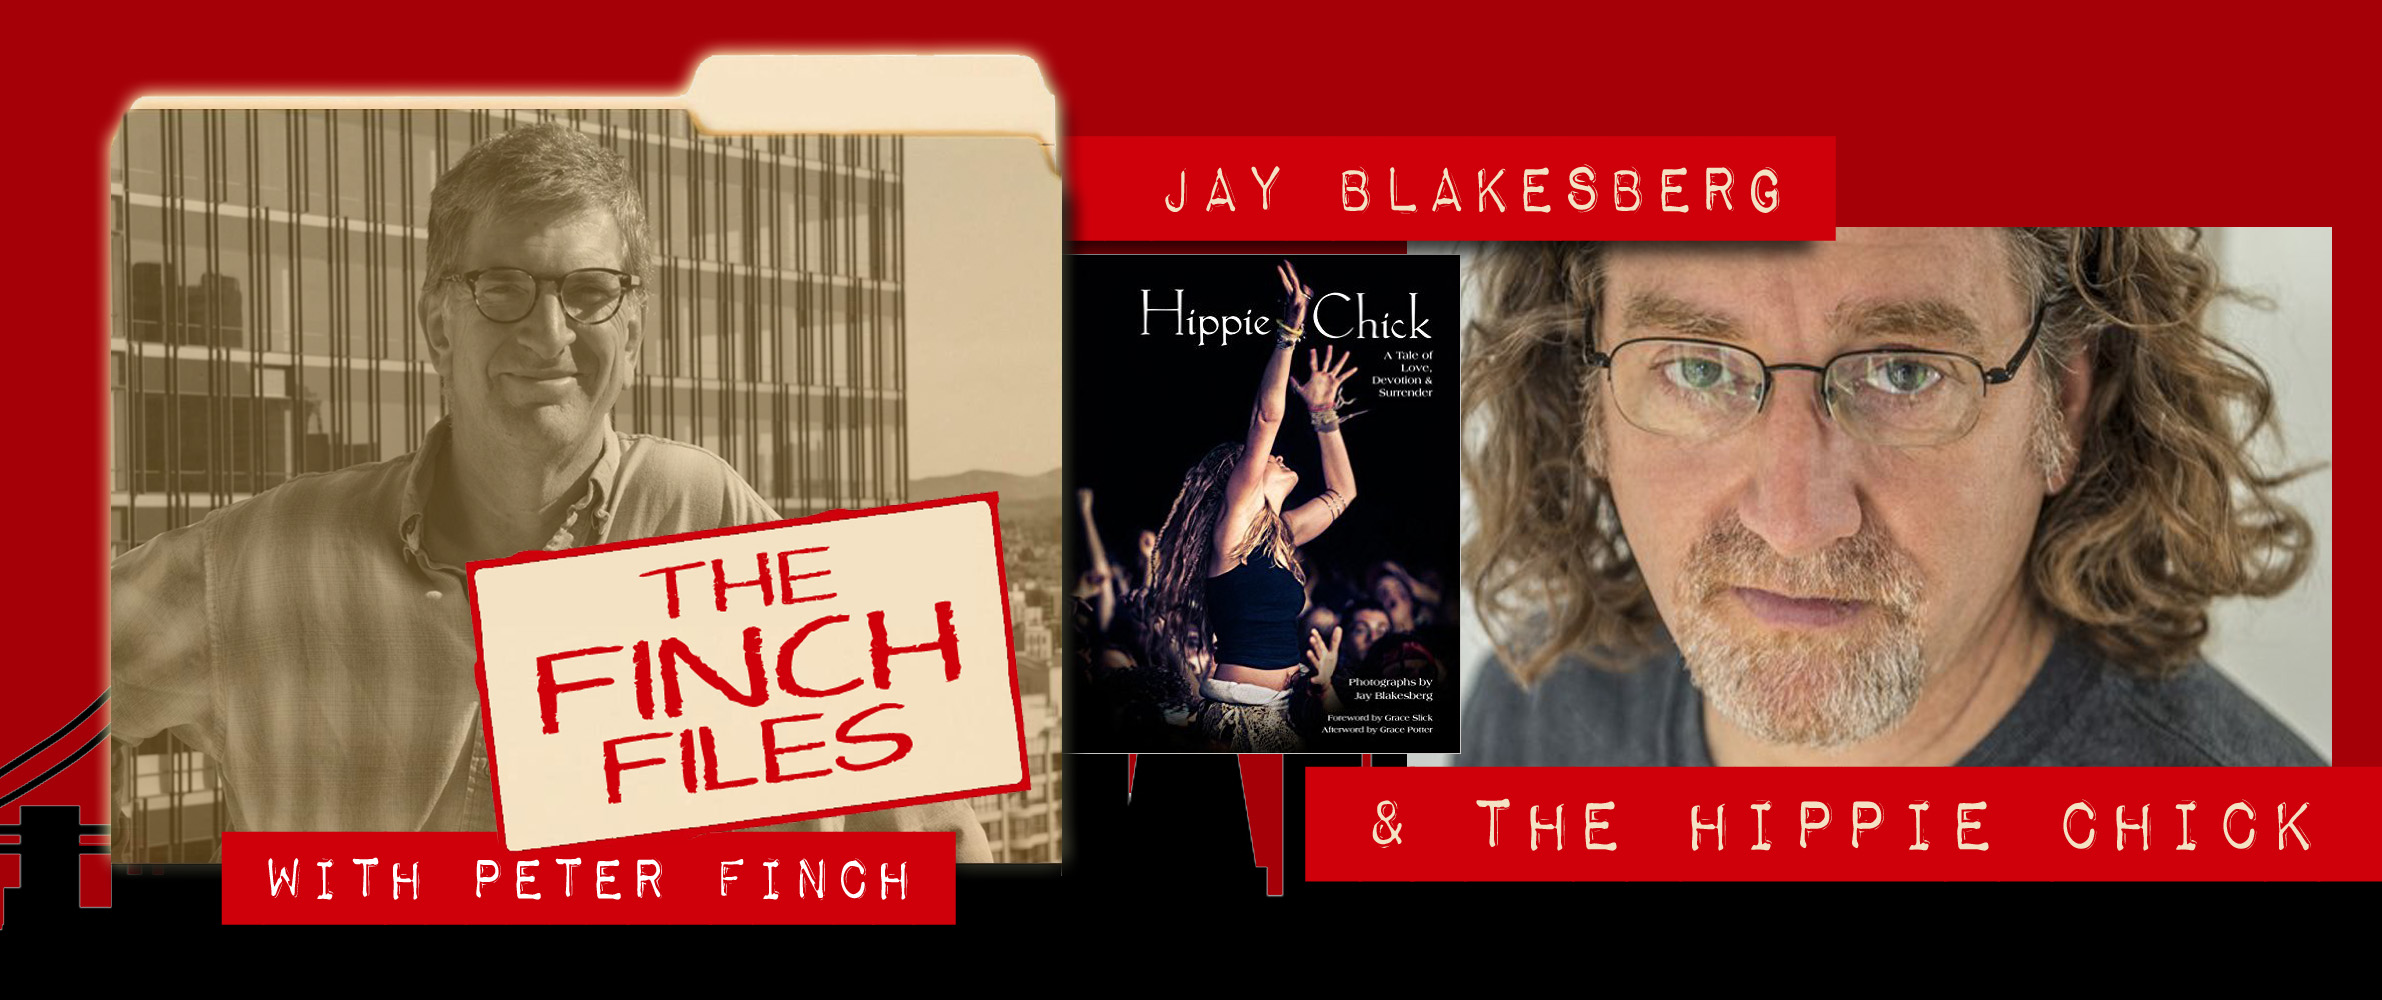 The Finch Files: Jay Blakesberg and the Hippie Chick